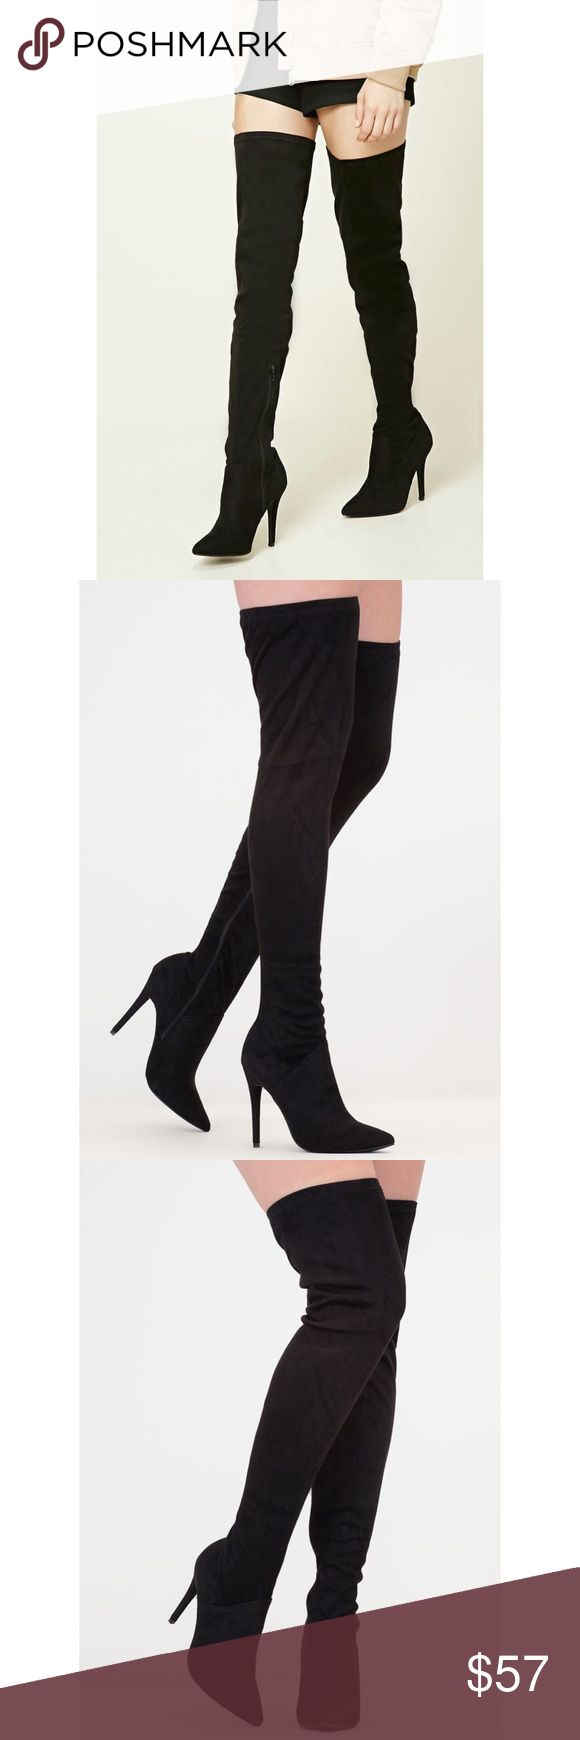 Thigh High Heeled Boots Thigh high heeled boots, only worn once for about two hours. I'm not big on pointed toe heels and would like to make my money back so that I️ can buy rounded toe ones! They have an adjustable tie back to them. Will come in the original box with dust bags! Tags: rag & bone nasty gal UNIF dollskill American apparel Tobi Charlotte Russe h&m lf free people forever 21 Bebe dolls kill classy American Eagle Hollister billabong la Hearts Kendall and Kylie lf express gojane…